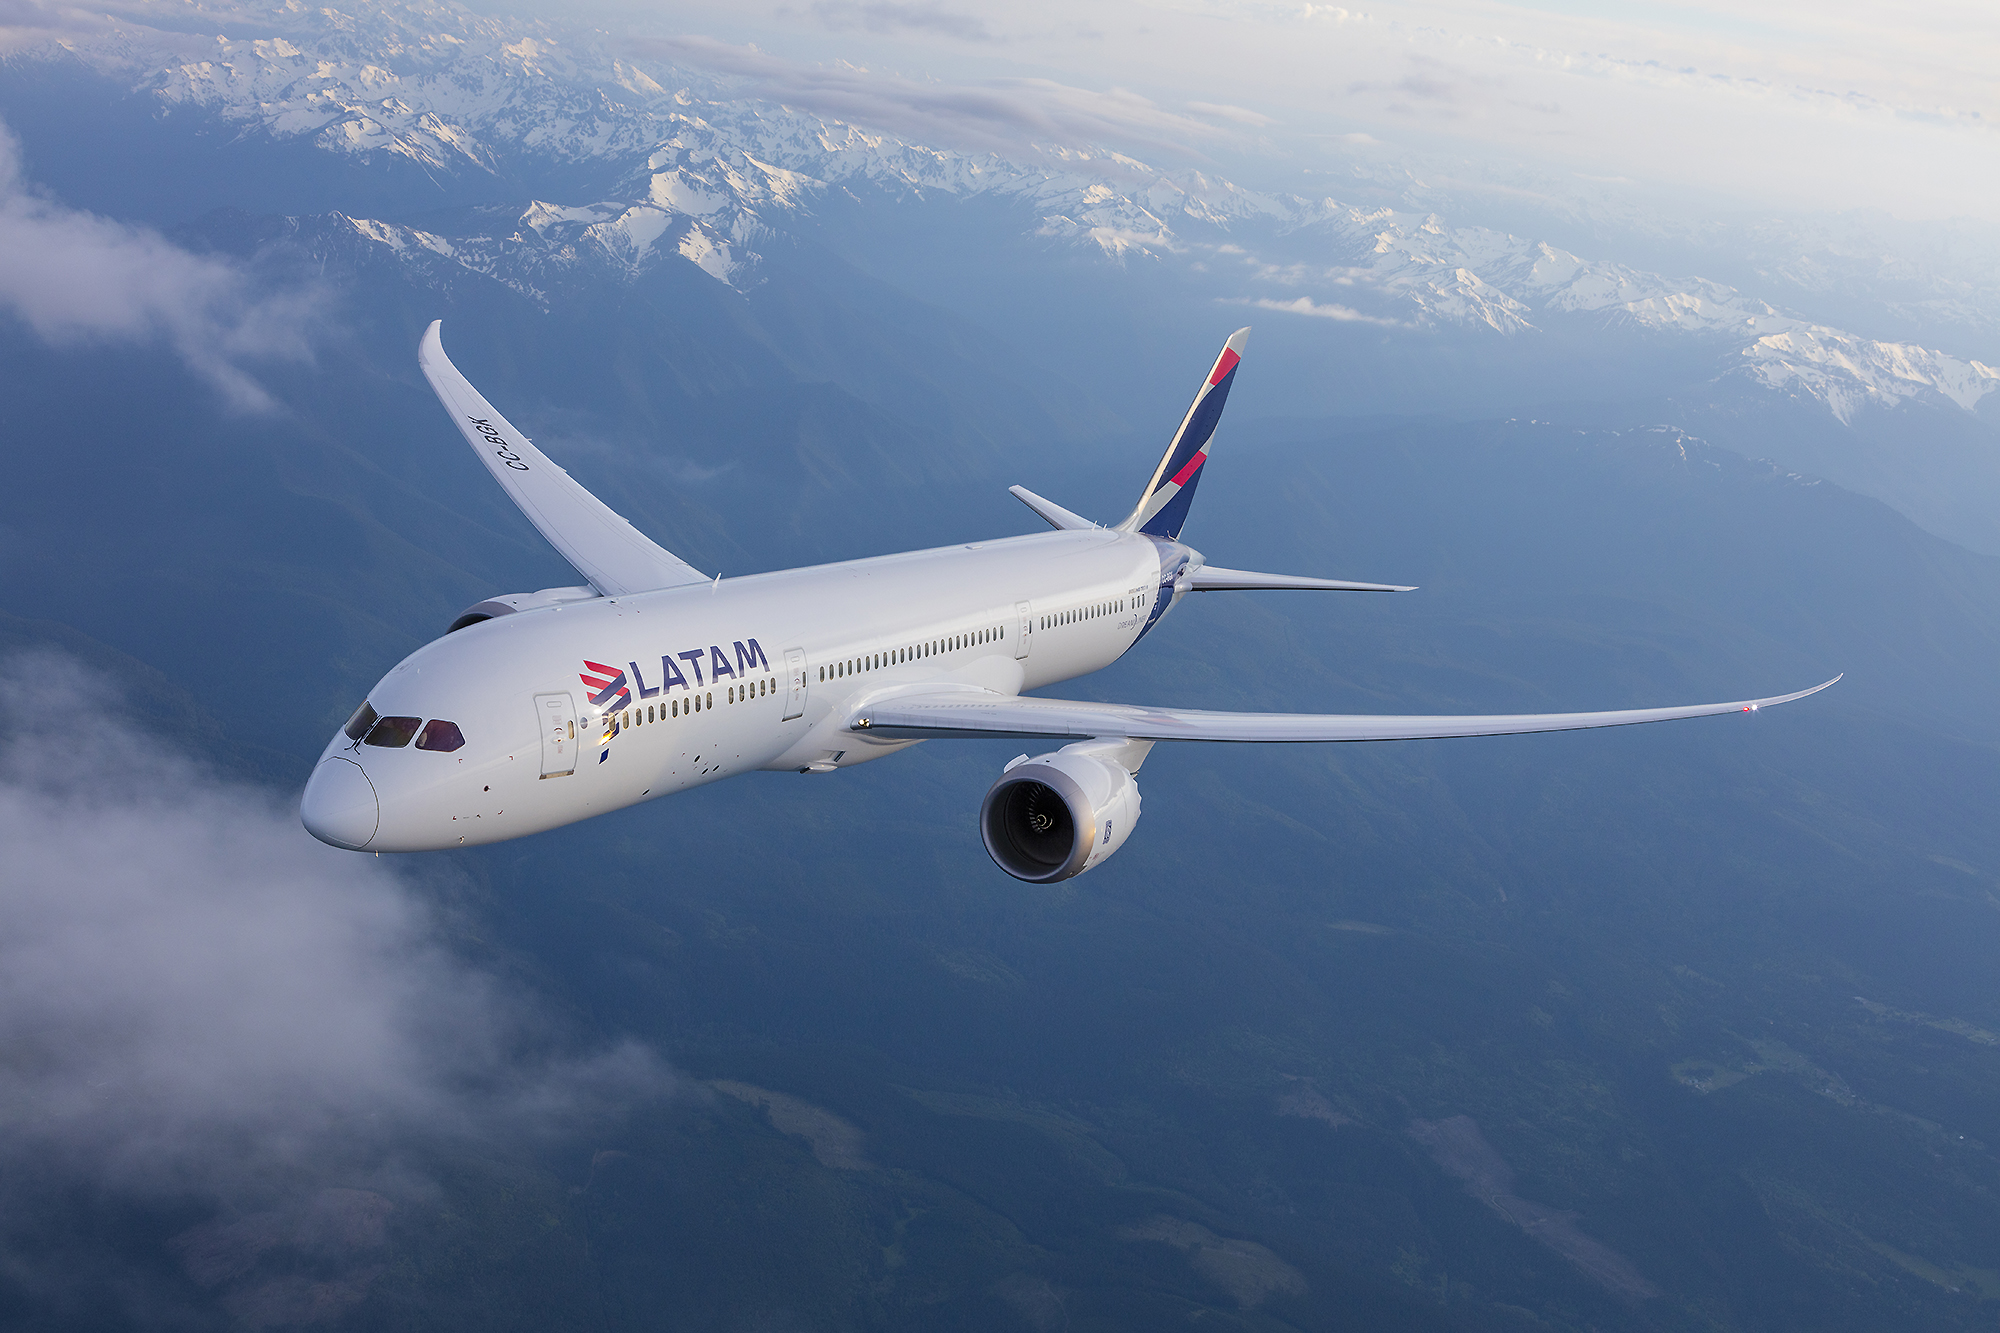 https://i2.wp.com/enelaire.mx/wp-content/uploads/LATAM-B787-9-volando-Chile.jpg